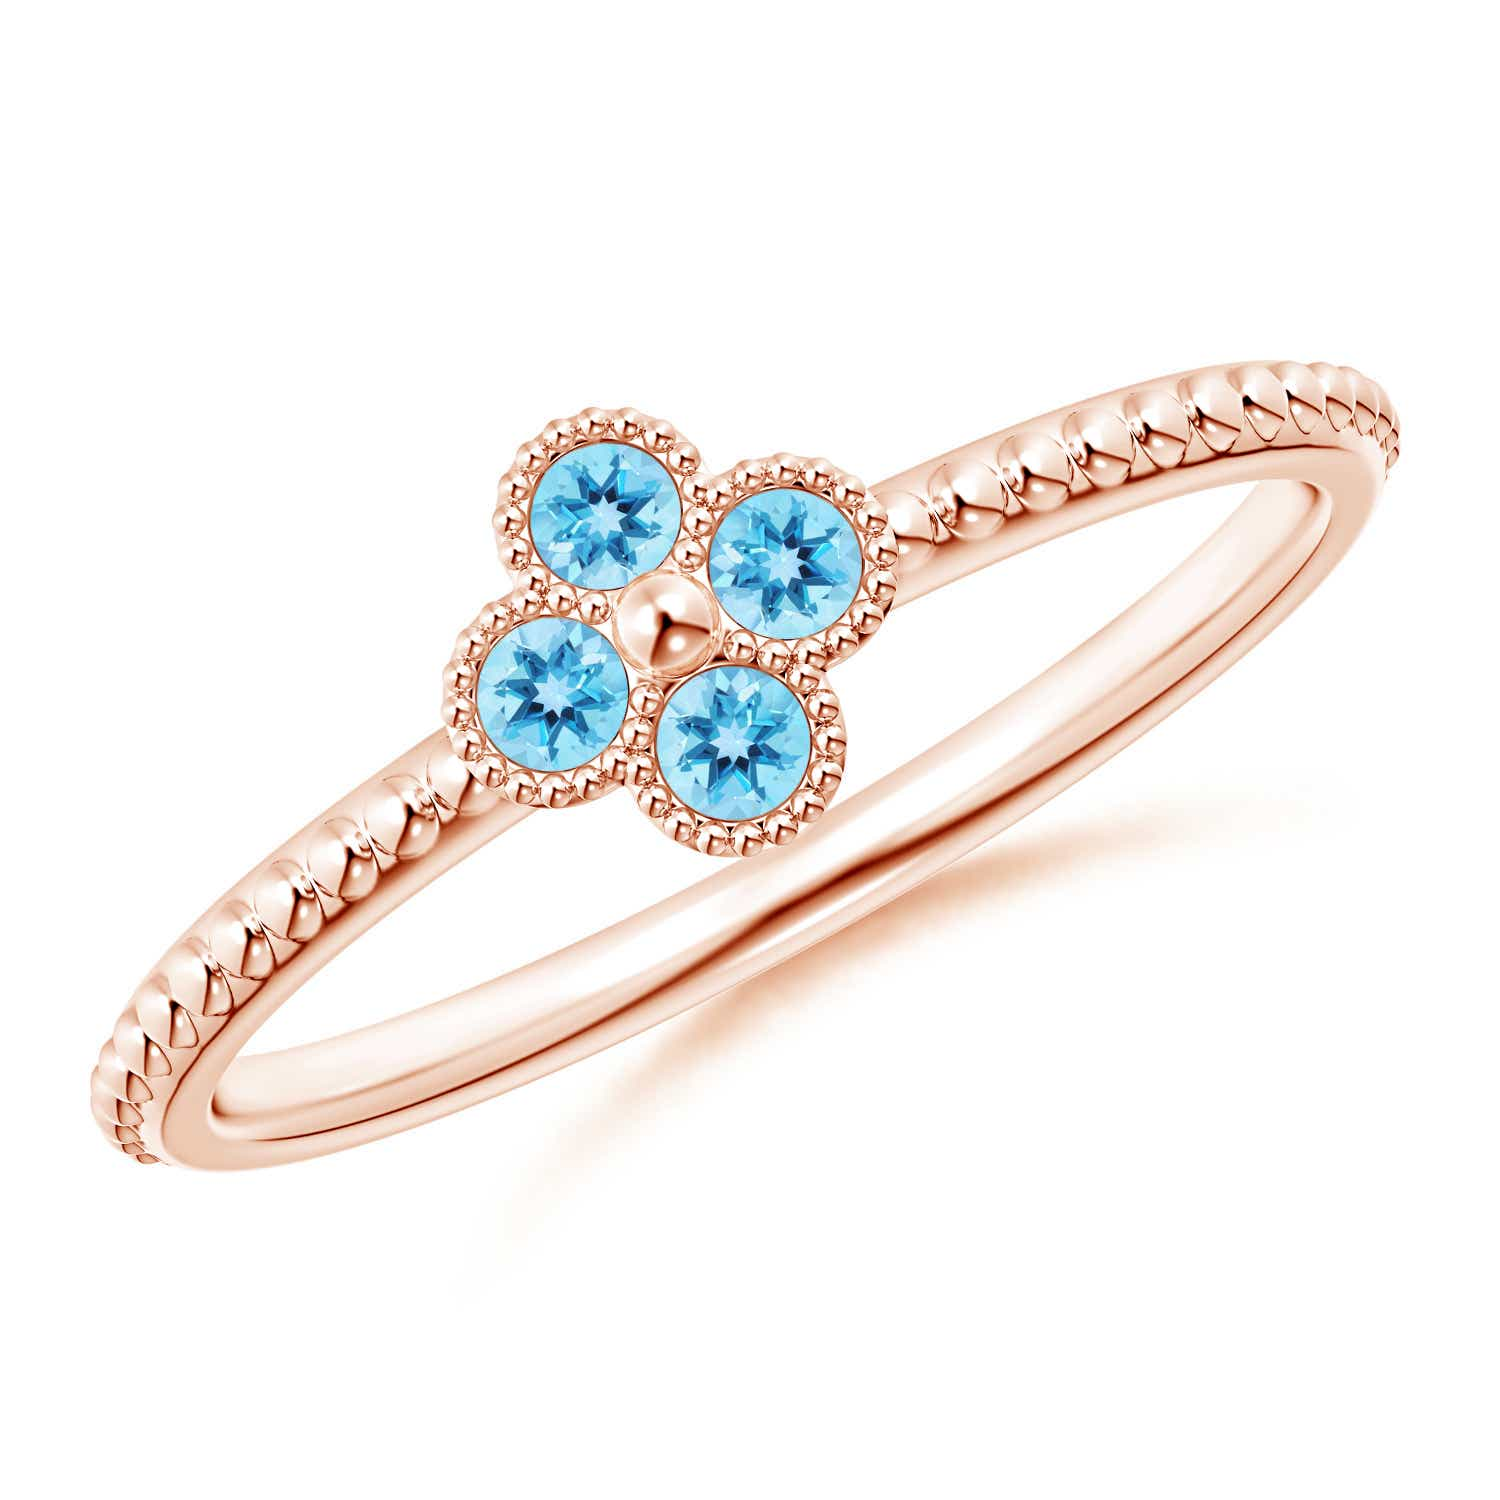 Angara Bezel-Set Round Swiss Blue Topaz Ring with Beaded Shank ecEGWlHW5n